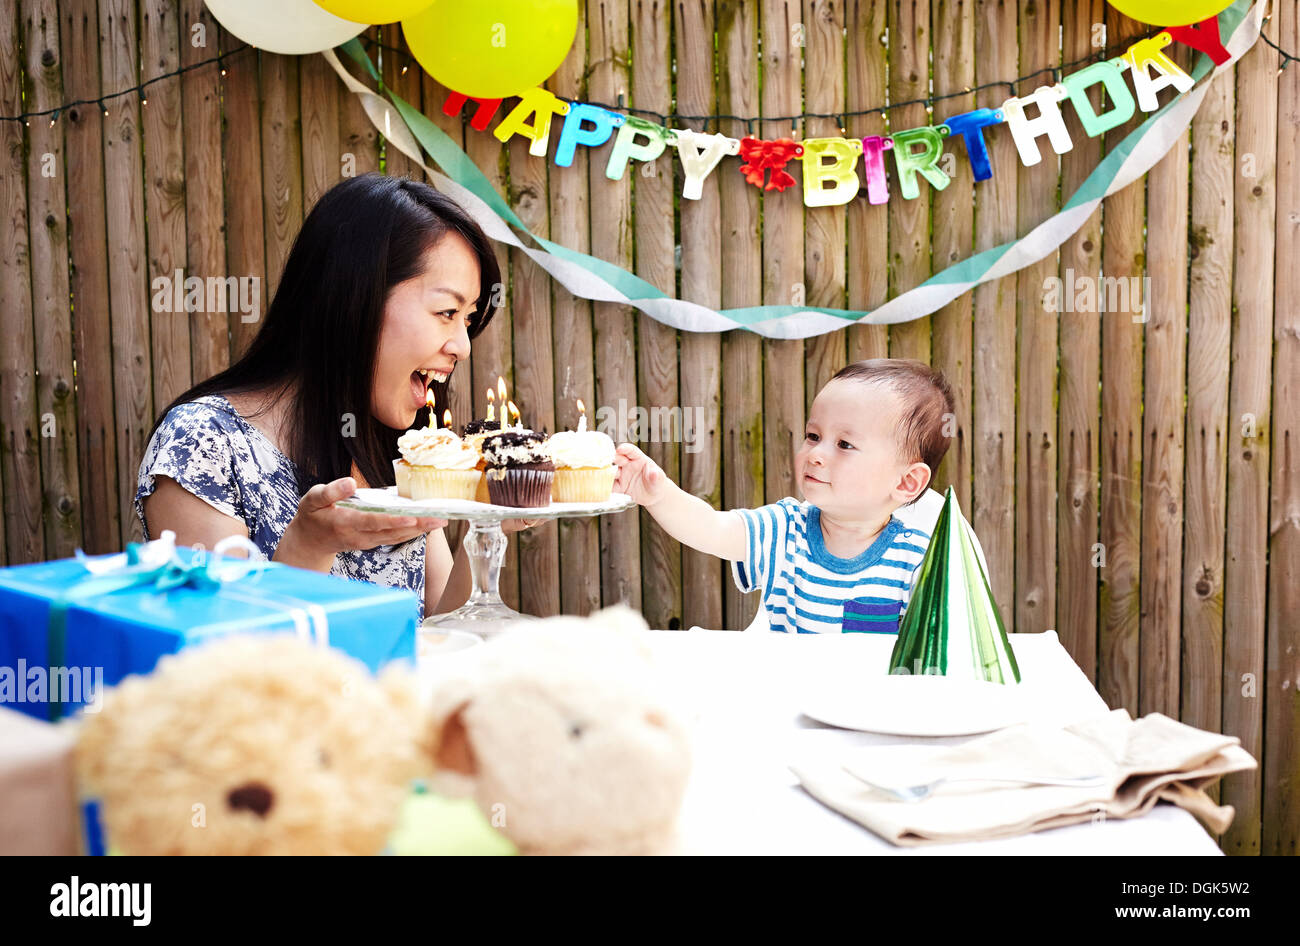 Mother showing cakes to baby boy - Stock Image